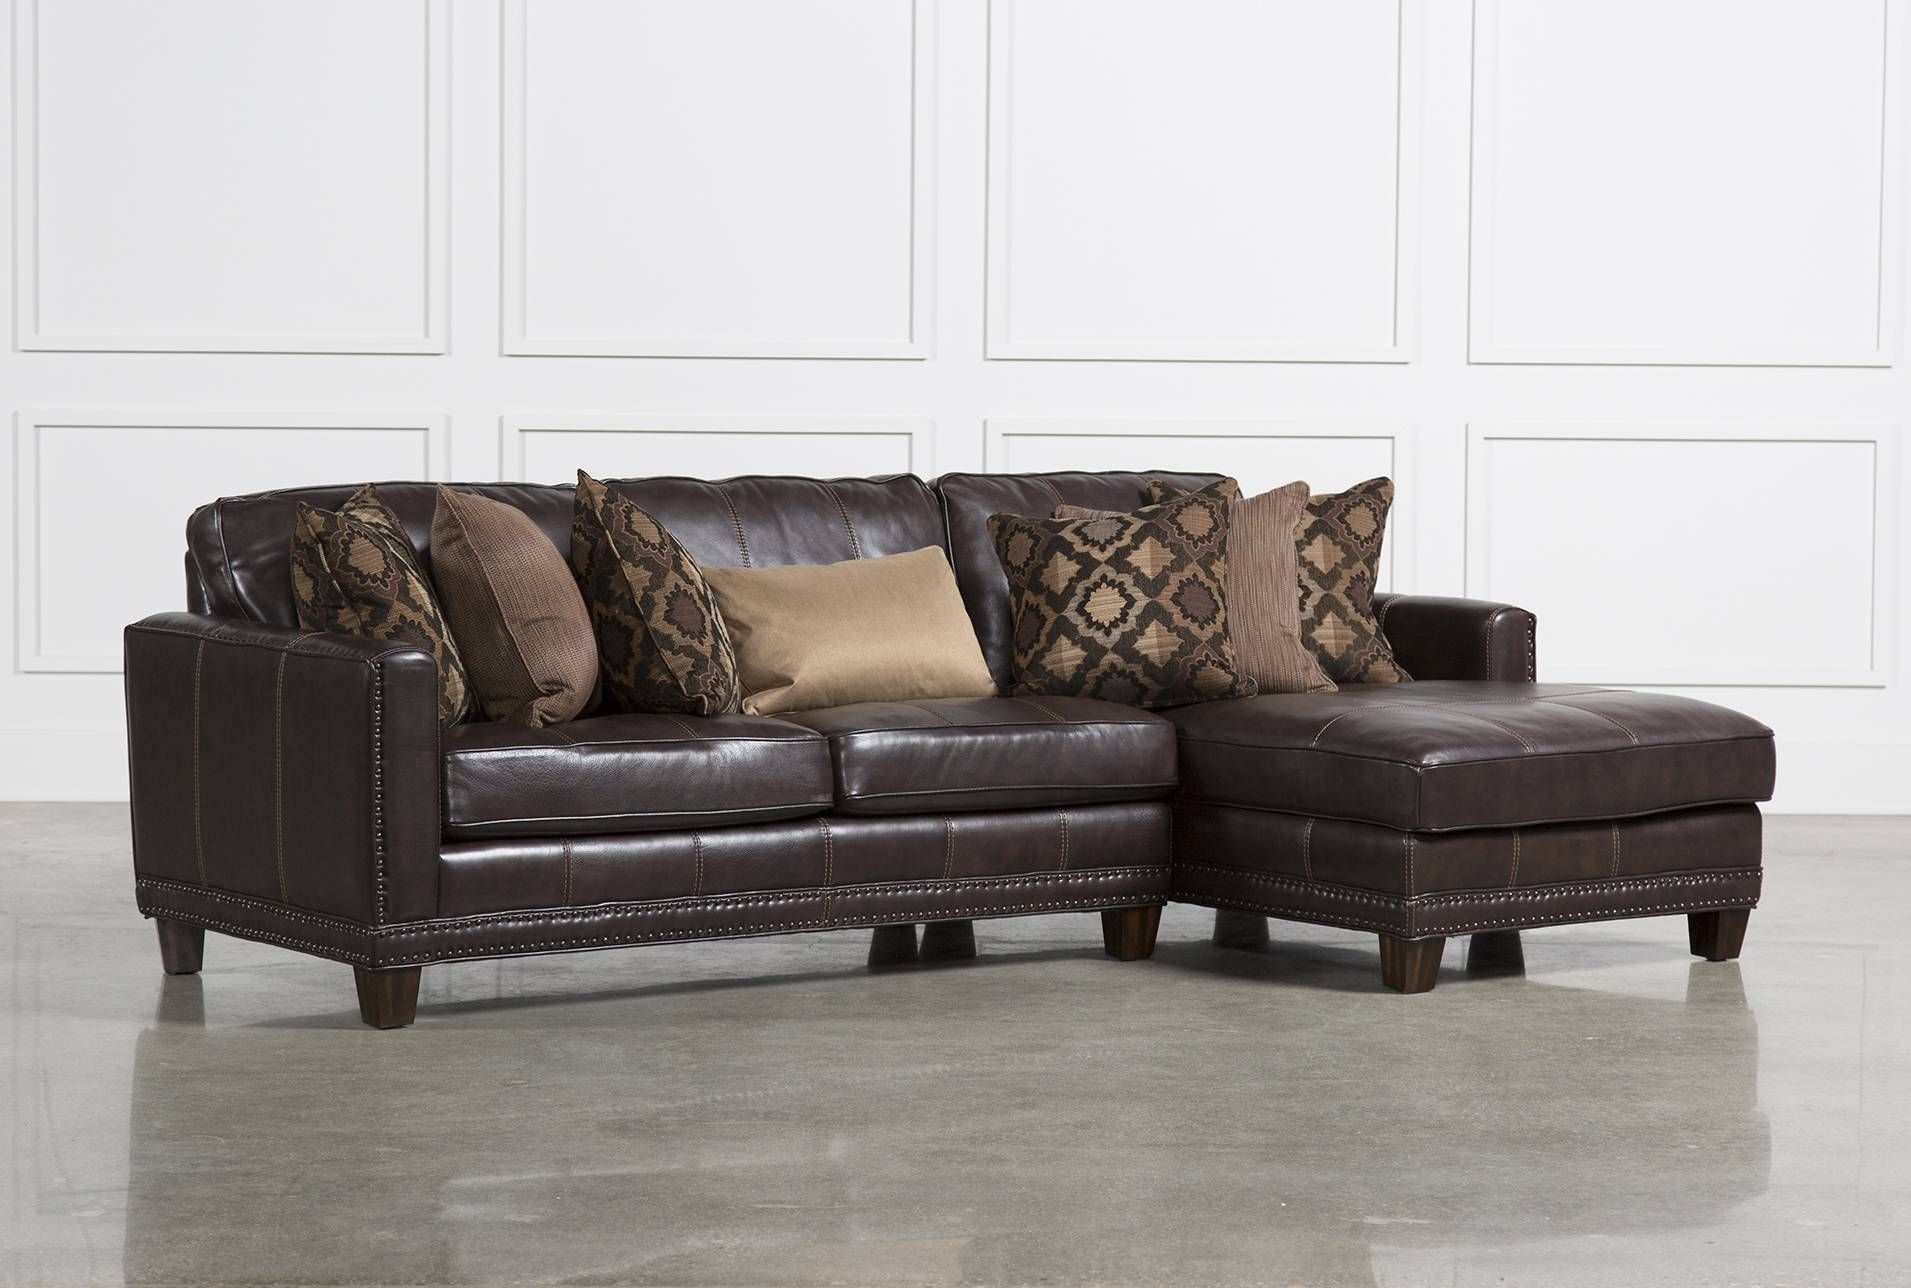 Phenomenal Barnaby 2 Piece Sectional W Raf Chaise Sofas Products Beatyapartments Chair Design Images Beatyapartmentscom